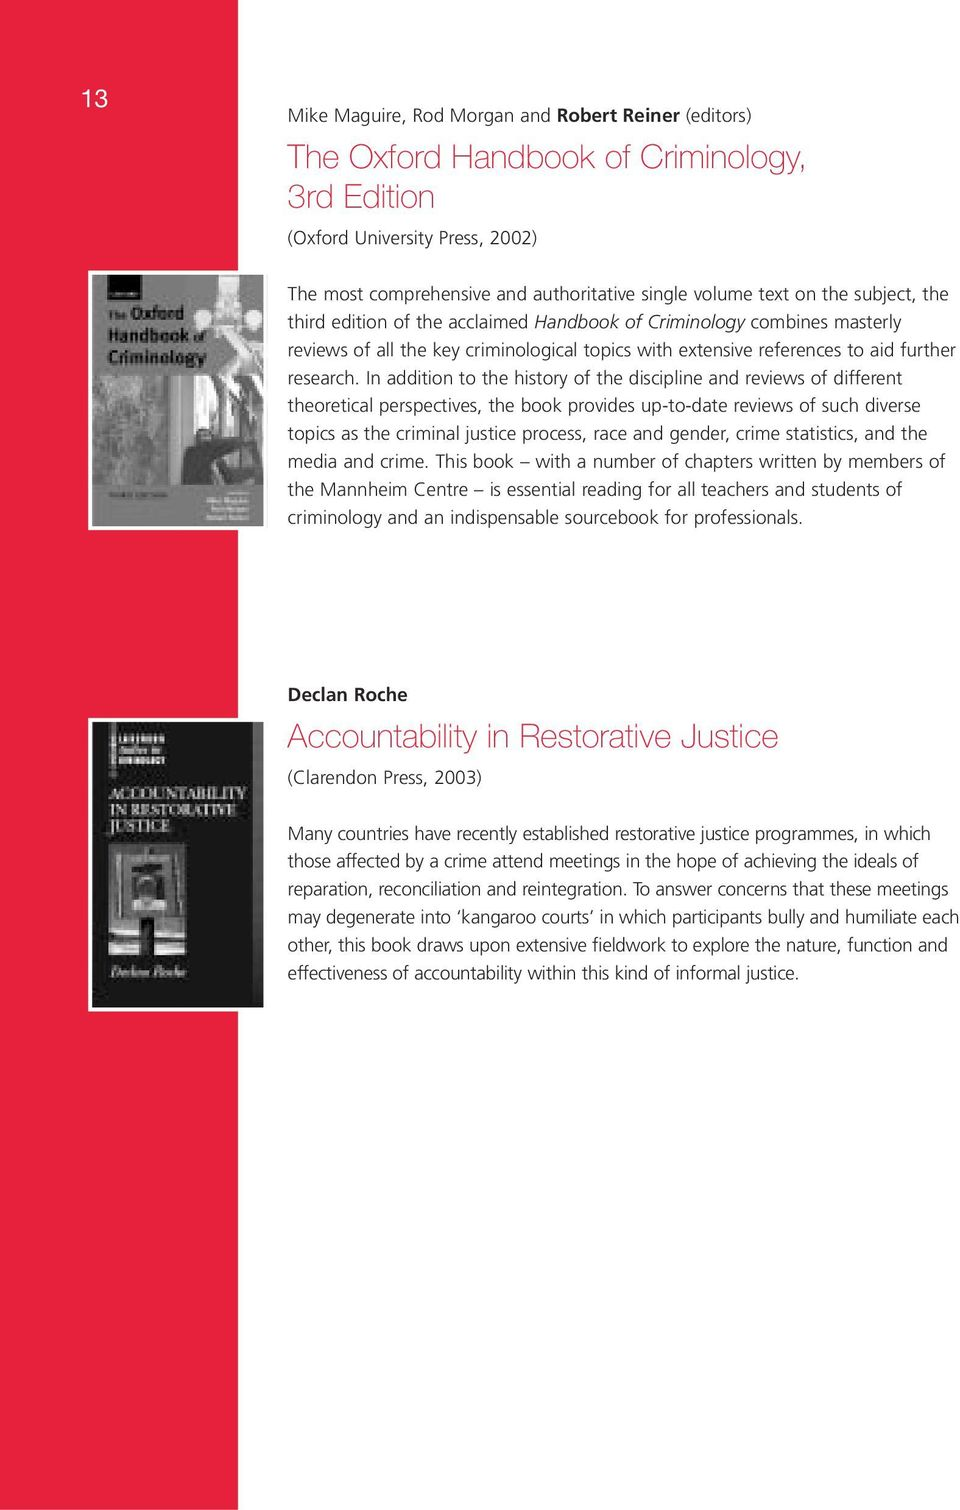 In addition to the history of the discipline and reviews of different theoretical perspectives, the book provides up-to-date reviews of such diverse topics as the criminal justice process, race and